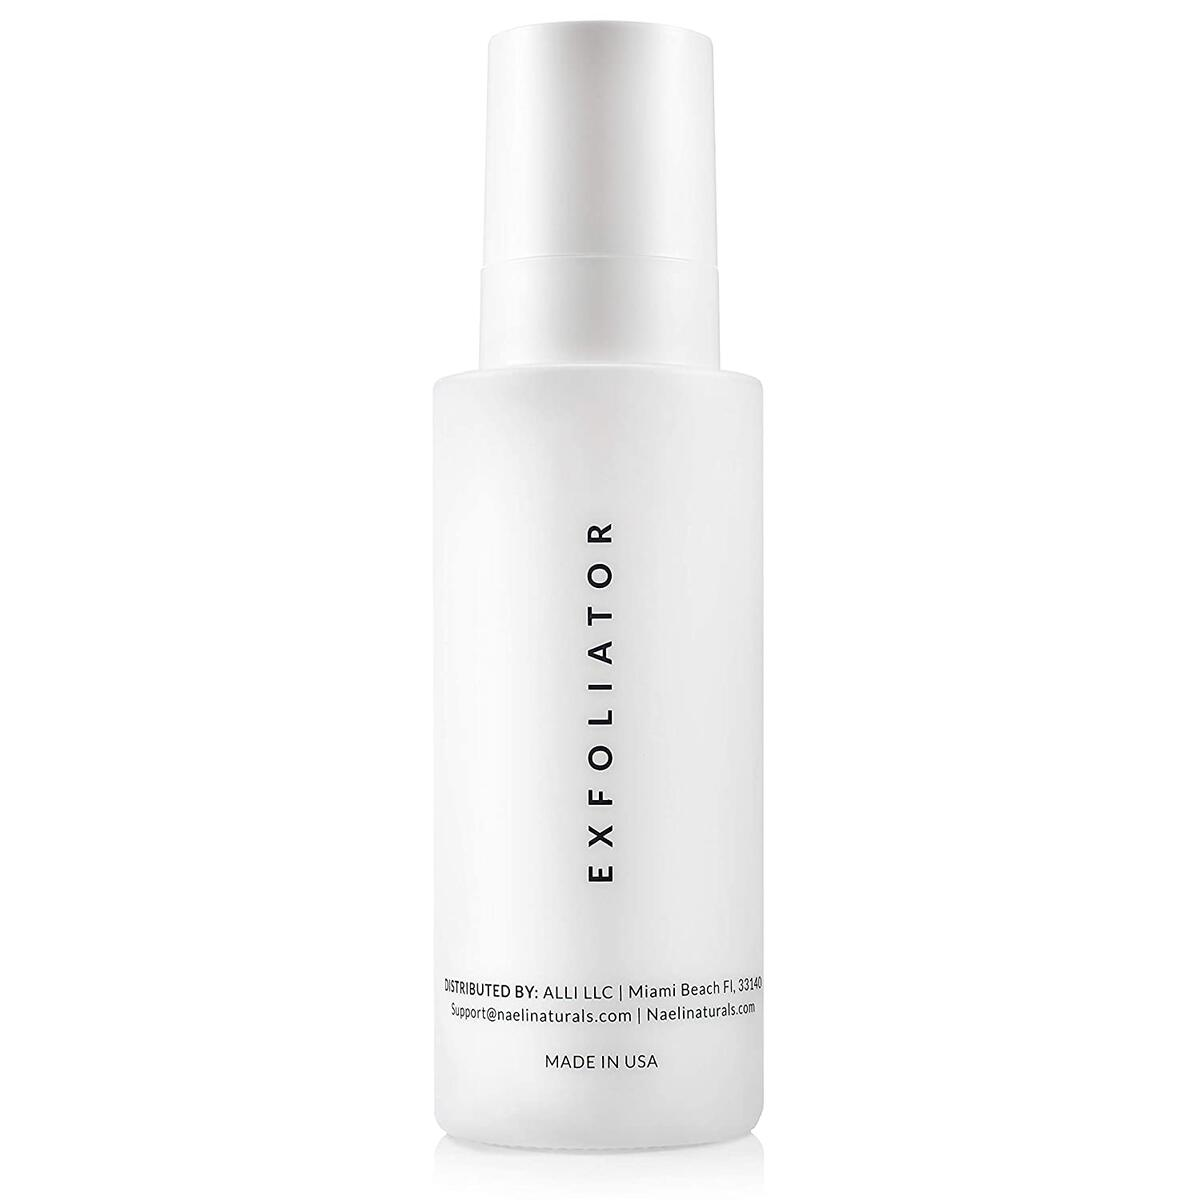 AHA/BHA - 10% Glycolic Acid Face Wash Exfoliating Cleanser, Exfoliator for Face with Antioxidants & Peptides - Deep Clean Toner & Peel For Face - Brightens & Smoothes Complexion, 4 oz.…